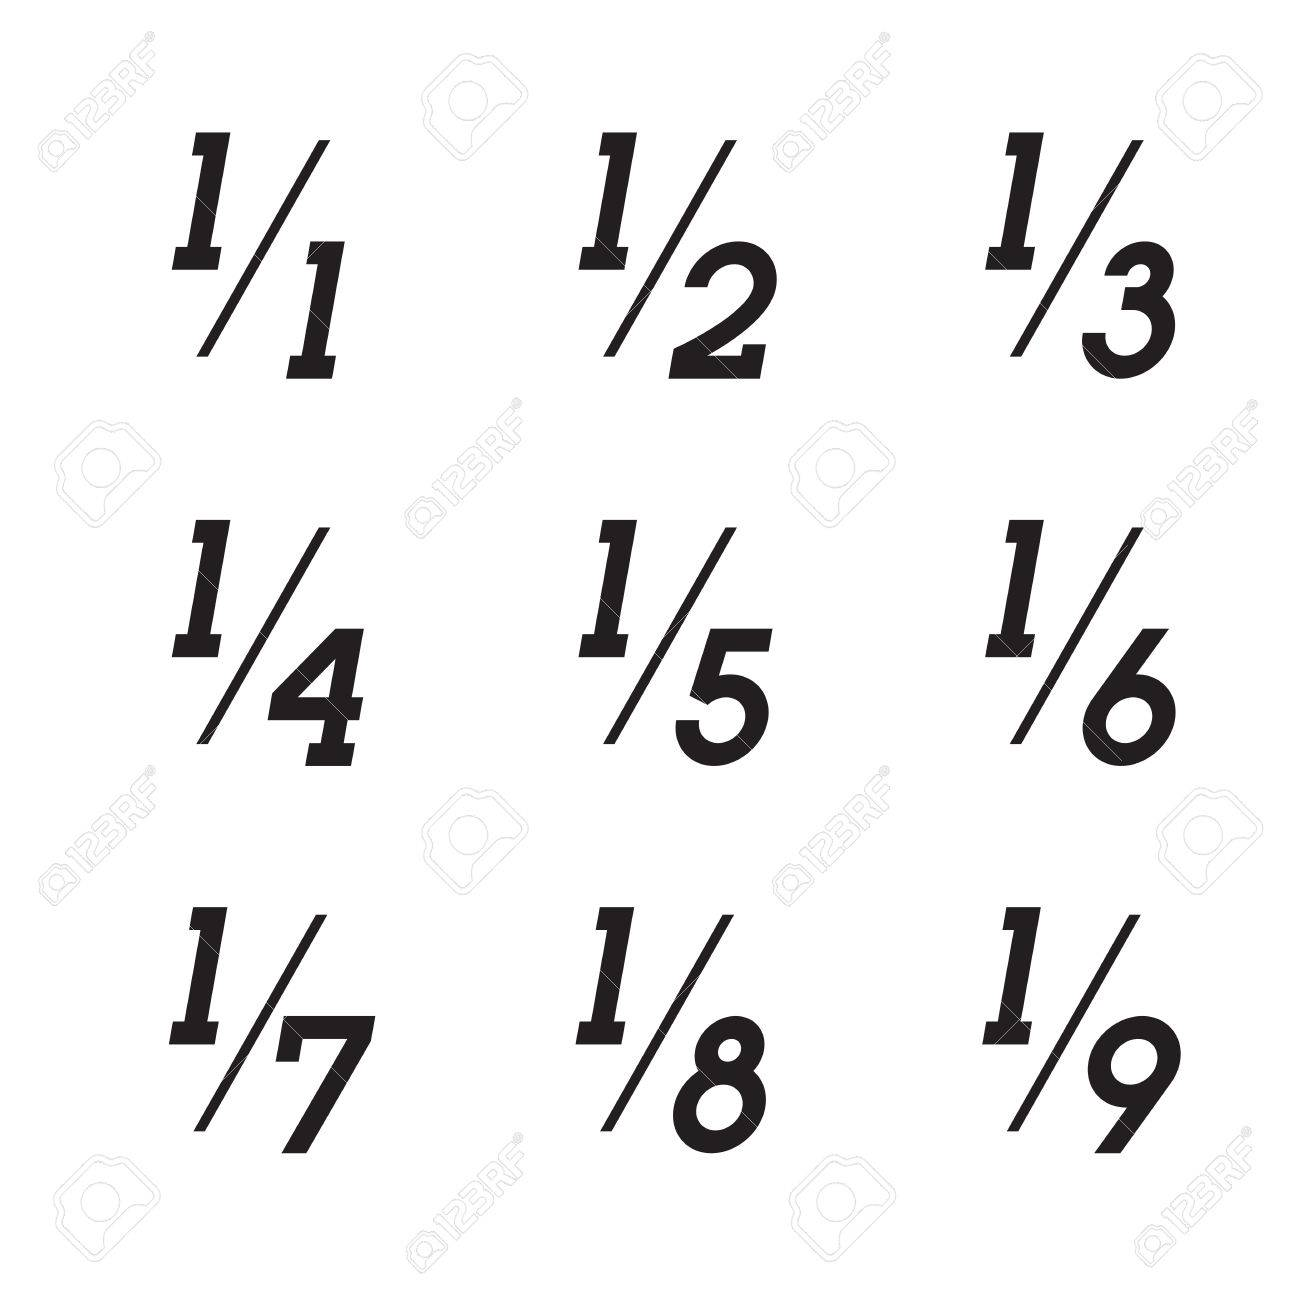 Vector Math Fractions Icons on White Background - 60164909